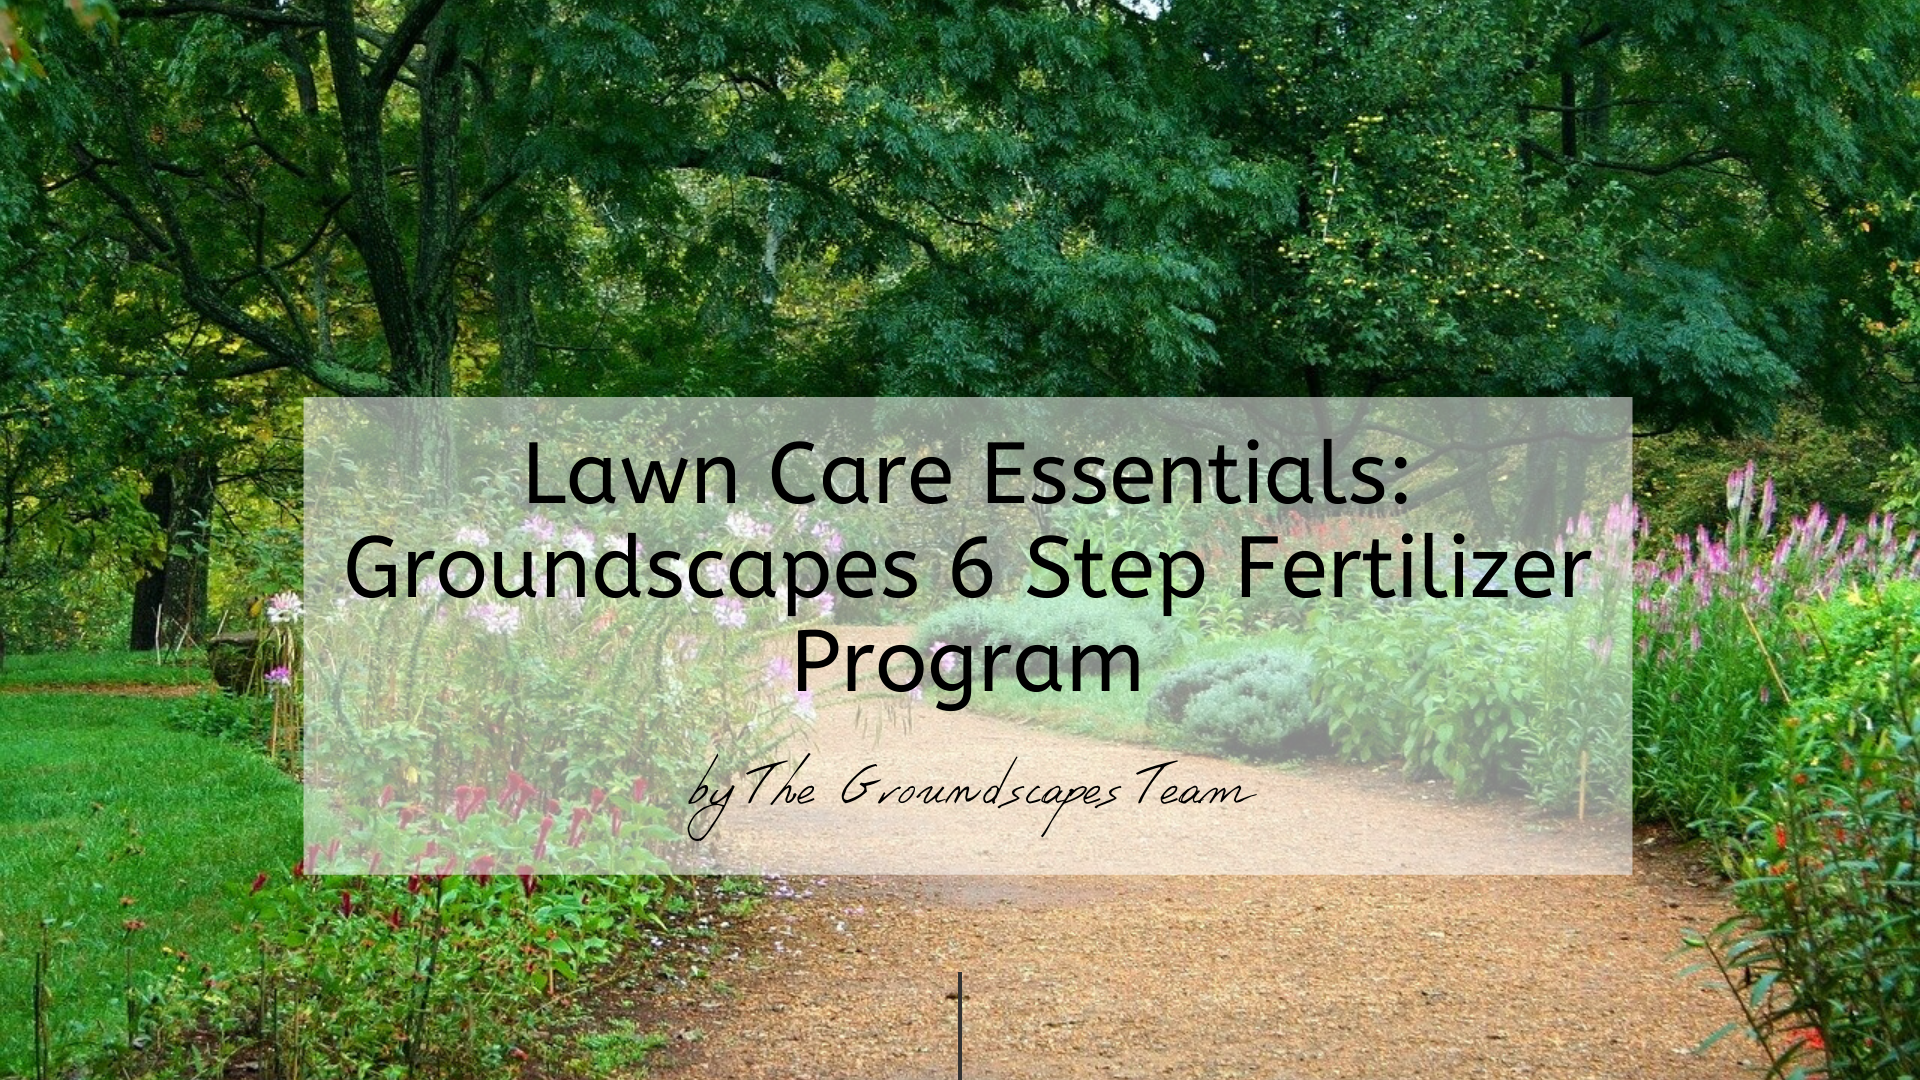 Lawn Care Essentials: Groundscapes 6 Step Fertilizer Program